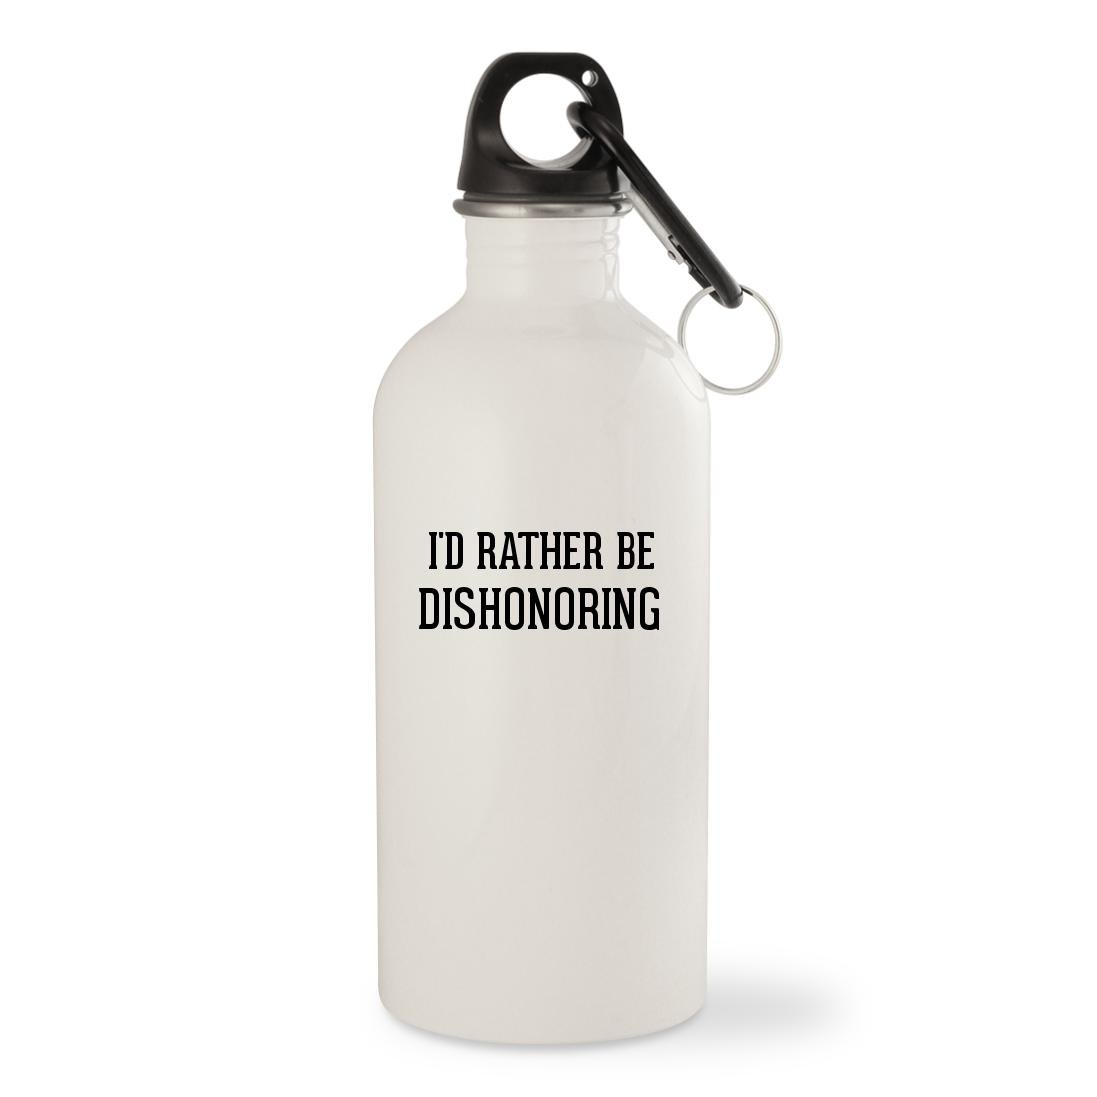 I'd Rather Be DISHONORING - White 20oz Stainless Steel Water Bottle with Carabiner